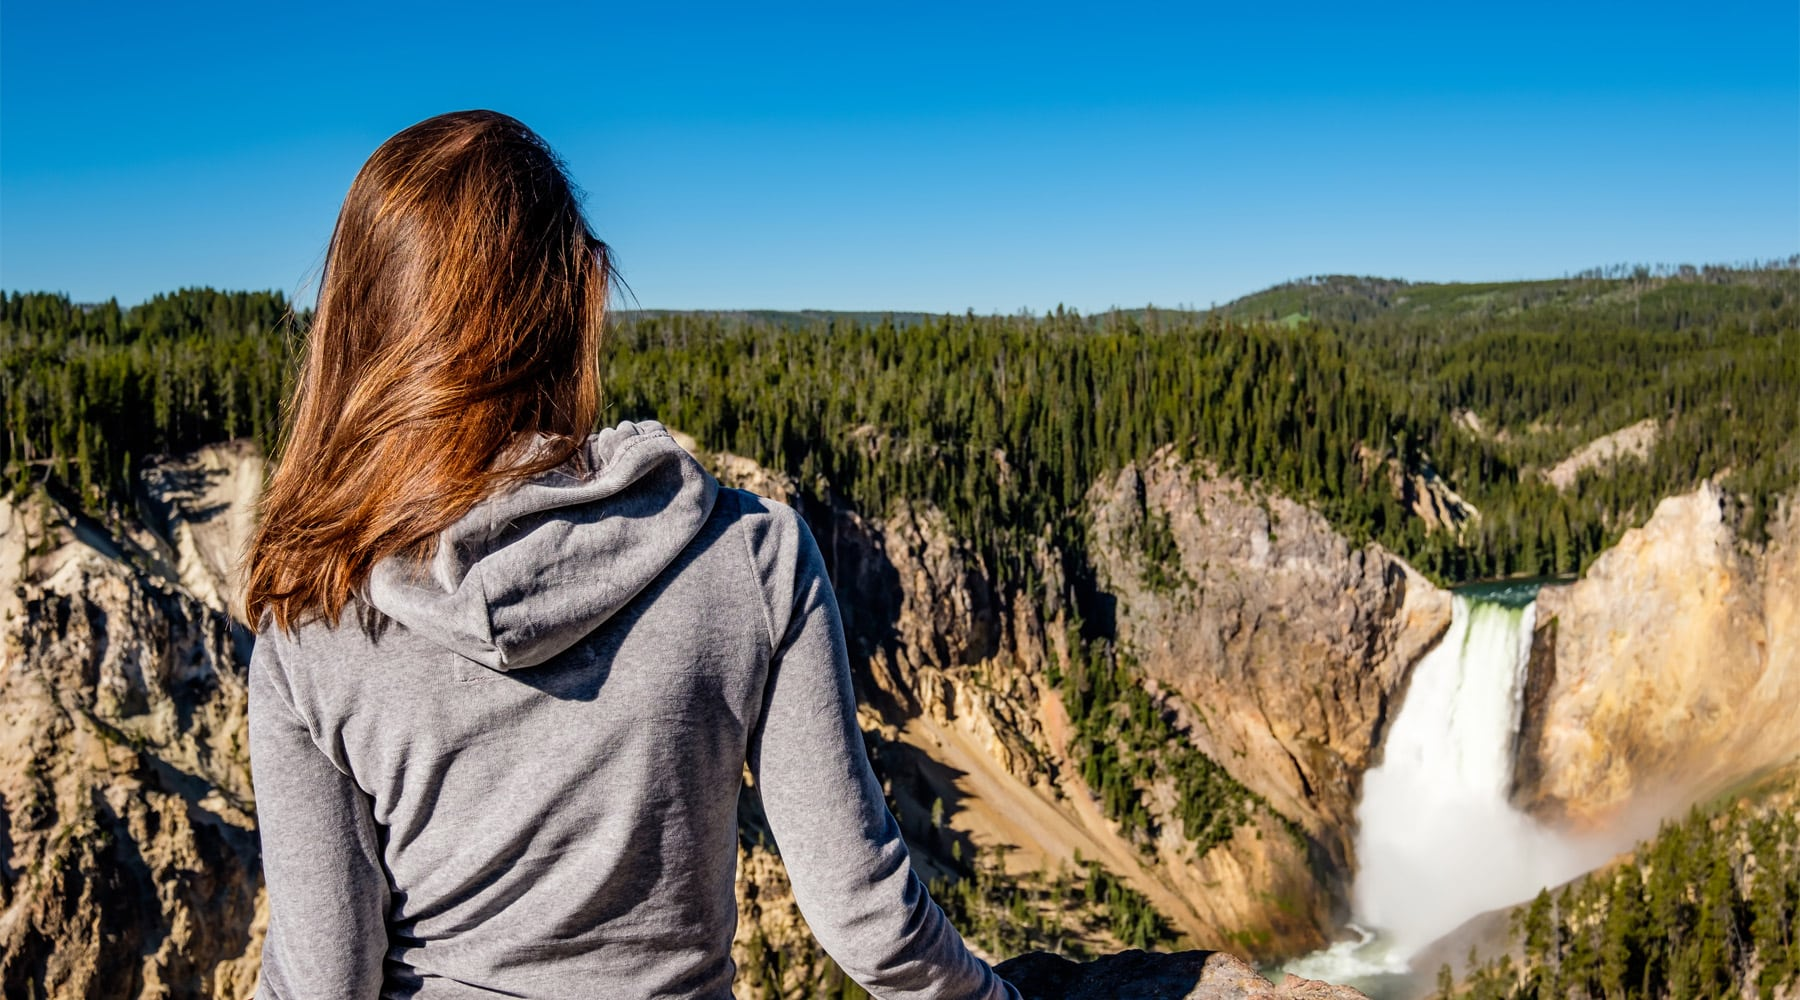 Yellowstone National Park – The First National Park in the US